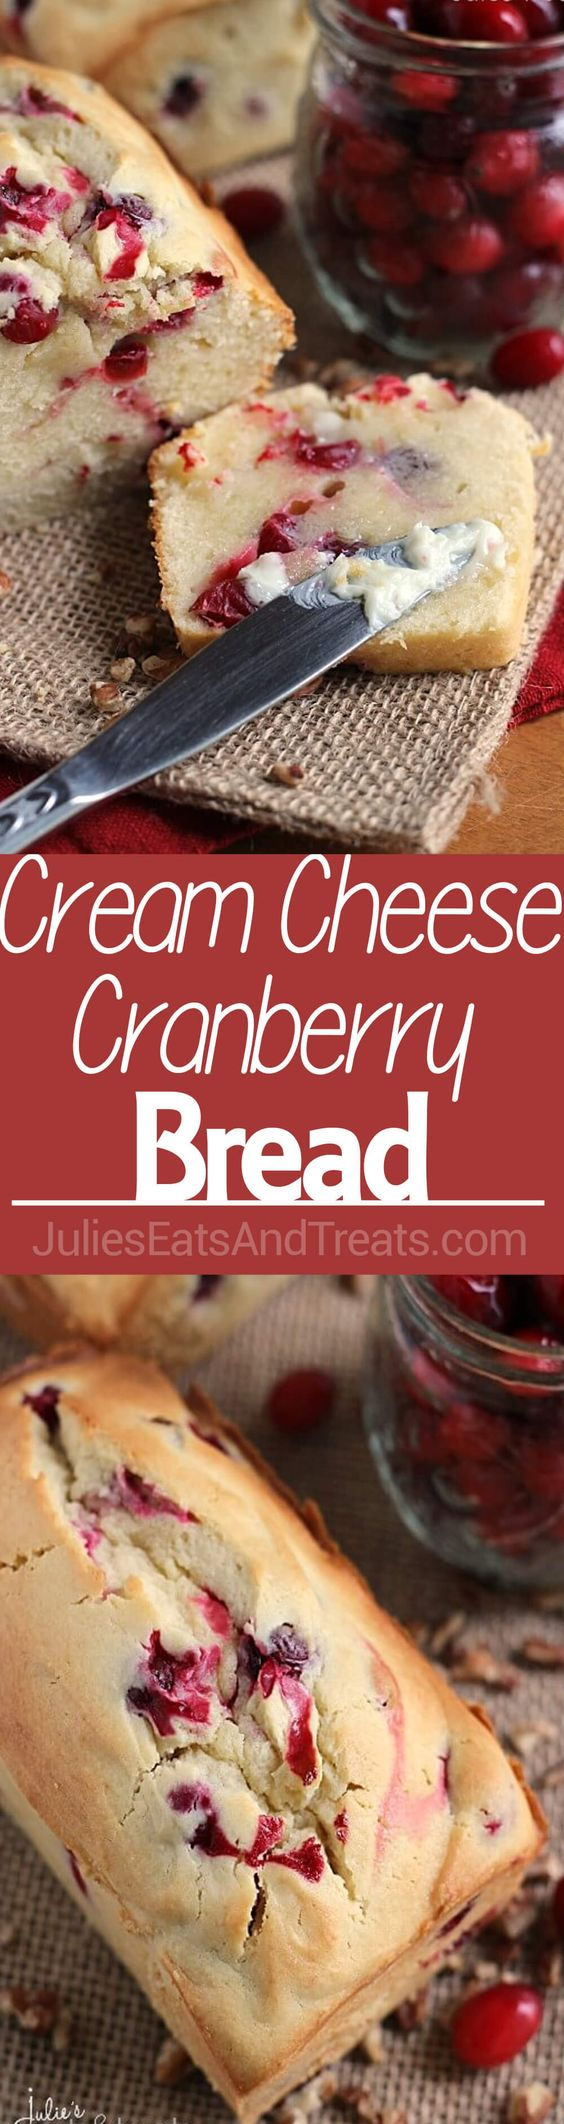 Cream Cheese Cranberry Bread Recipe via Julie's Eats and Treats ~ Amazingly Soft and Tender Quick Bread Stuffed with Tart Cranberries!